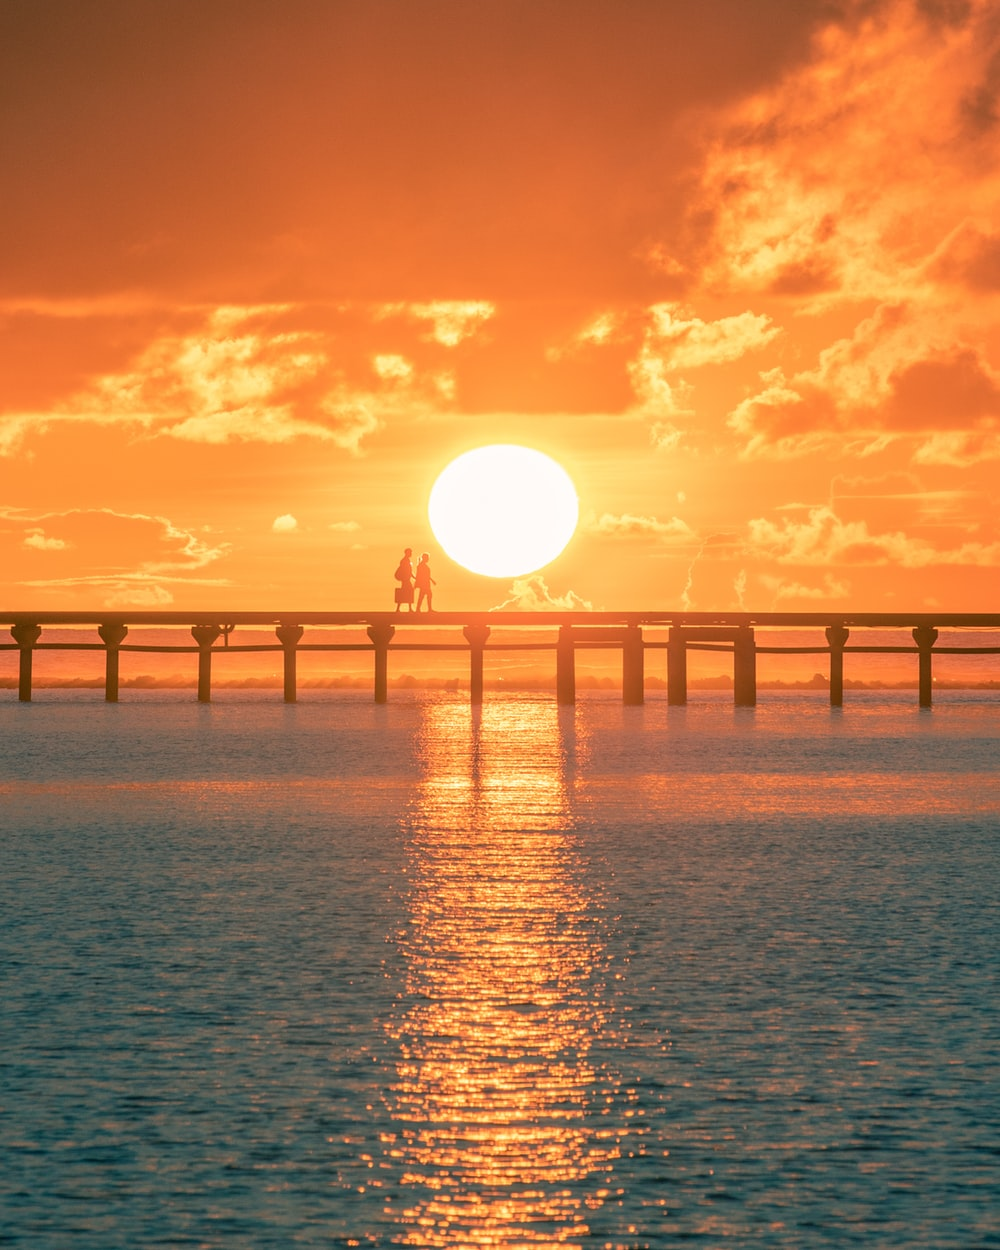 bridge over the sea during sunset